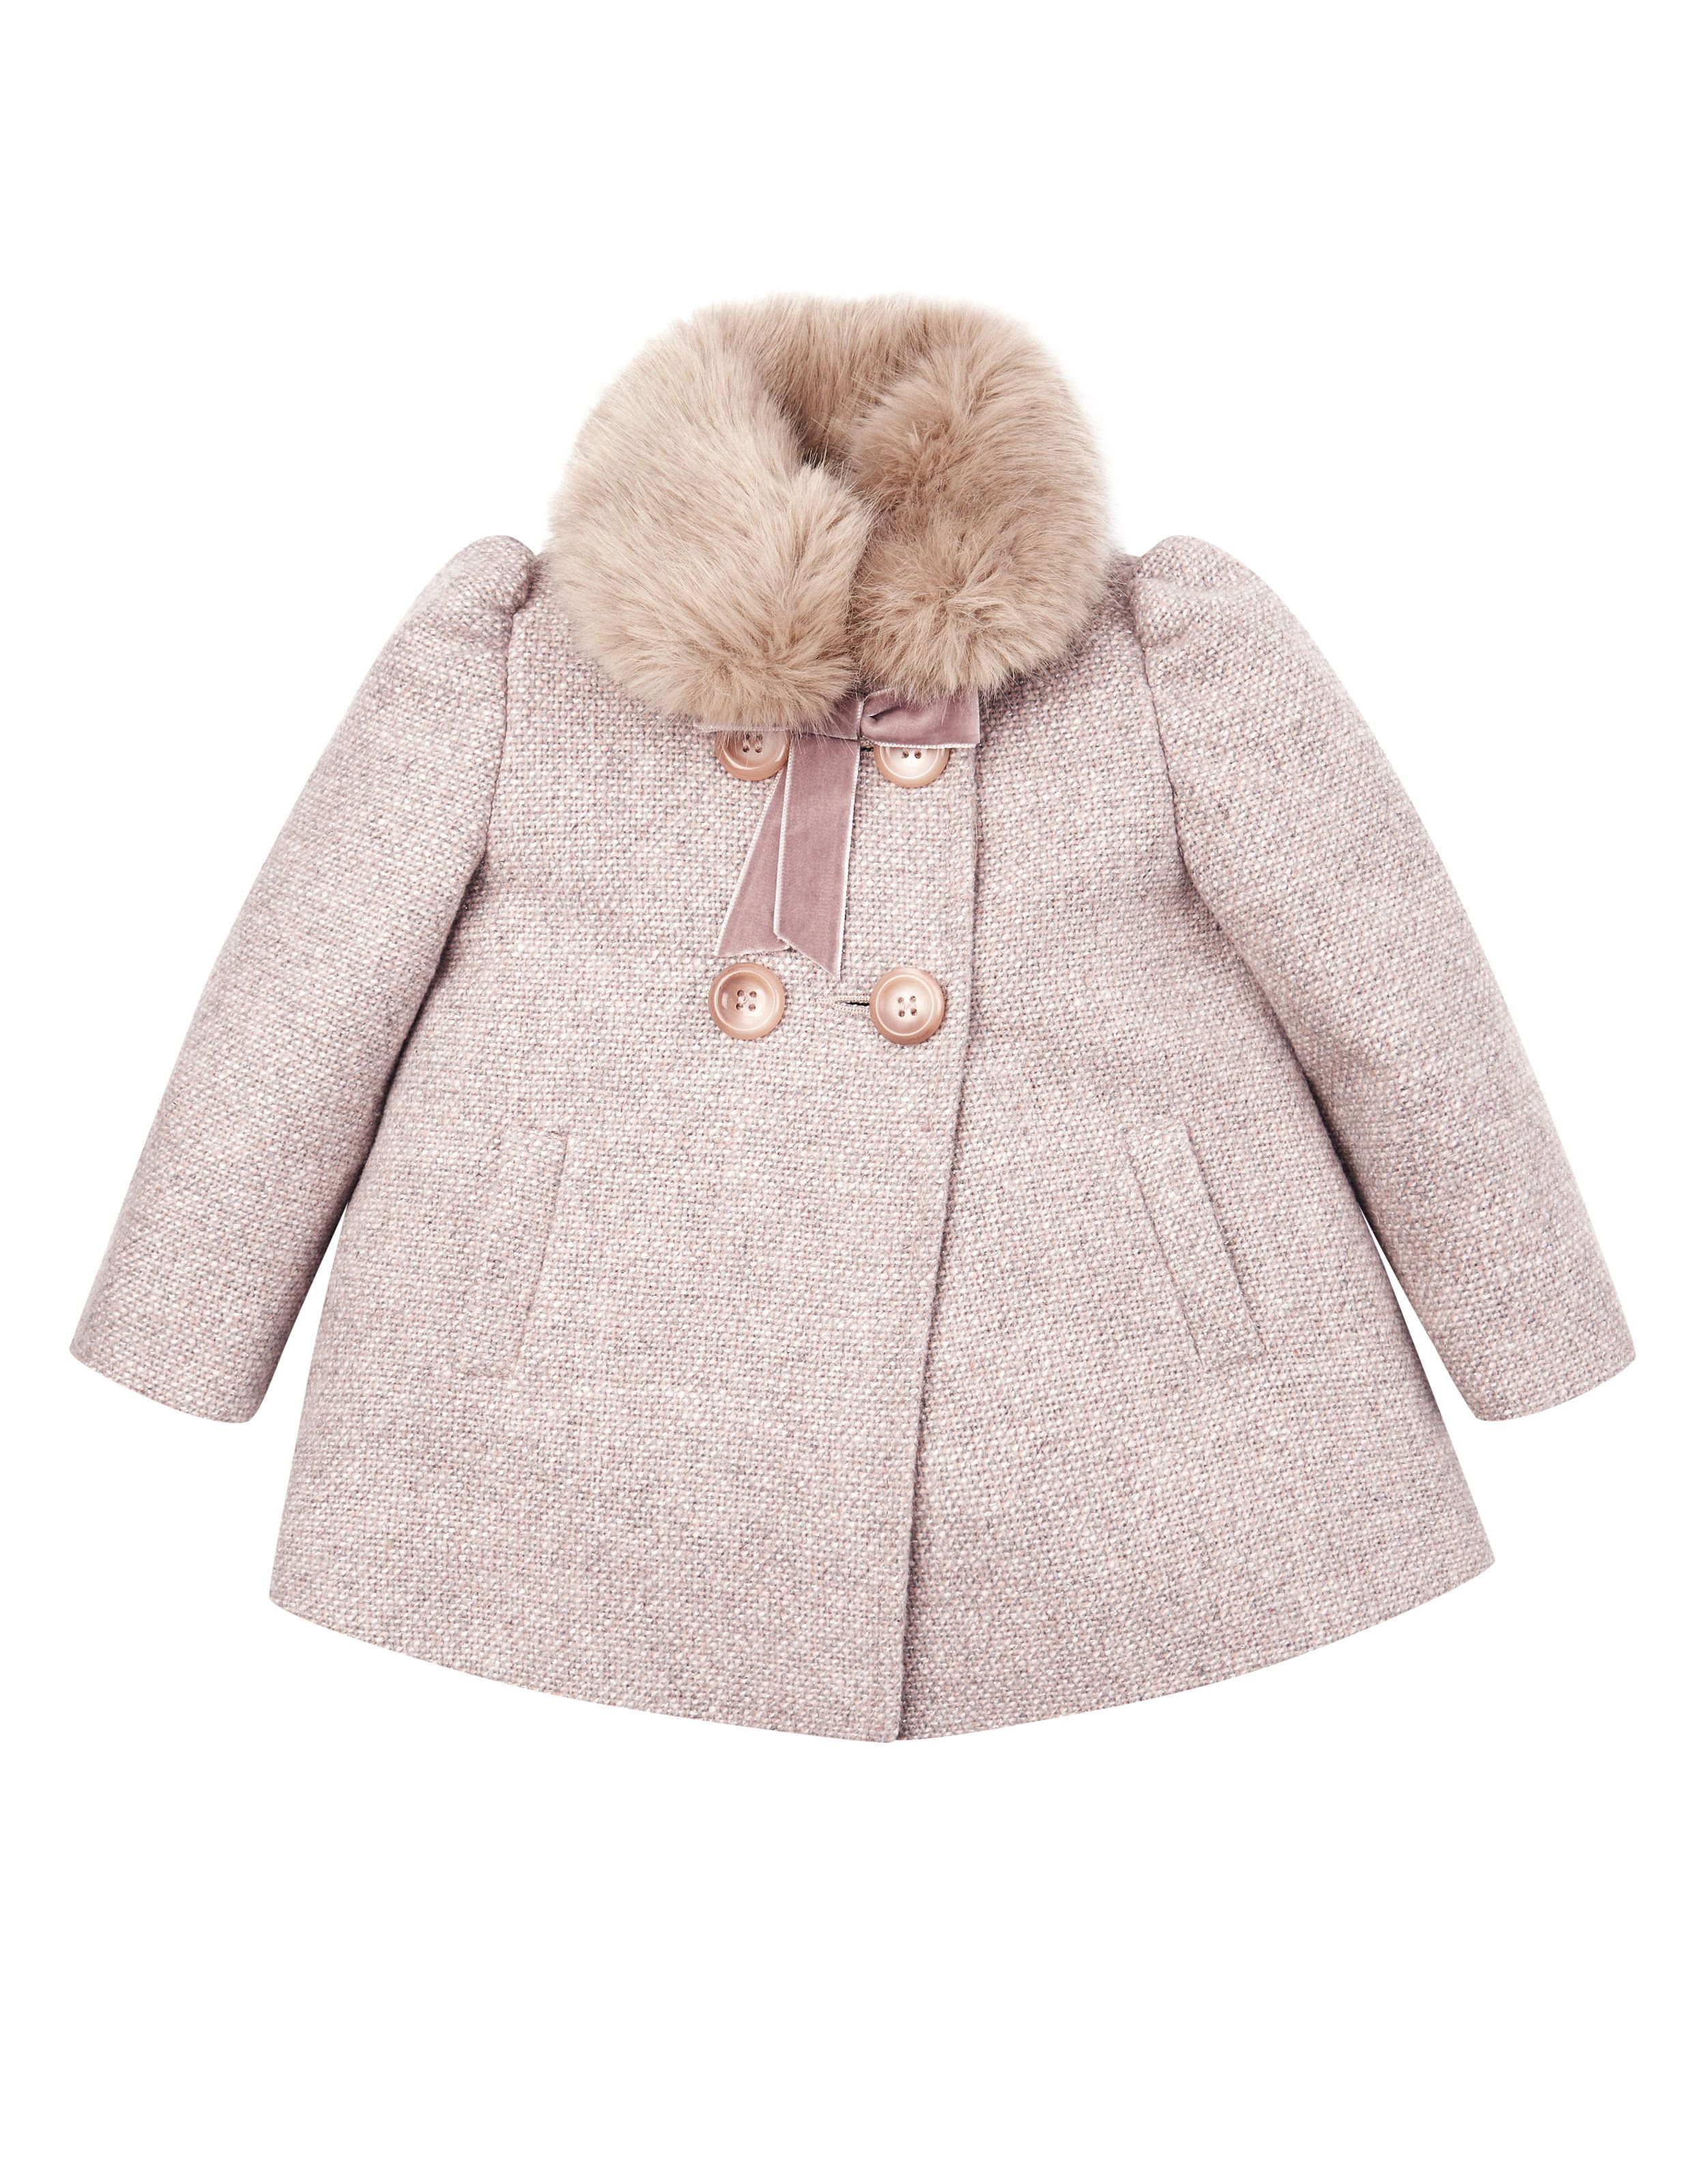 69dbcdeeb9ca Baby Claire Coat with Fur